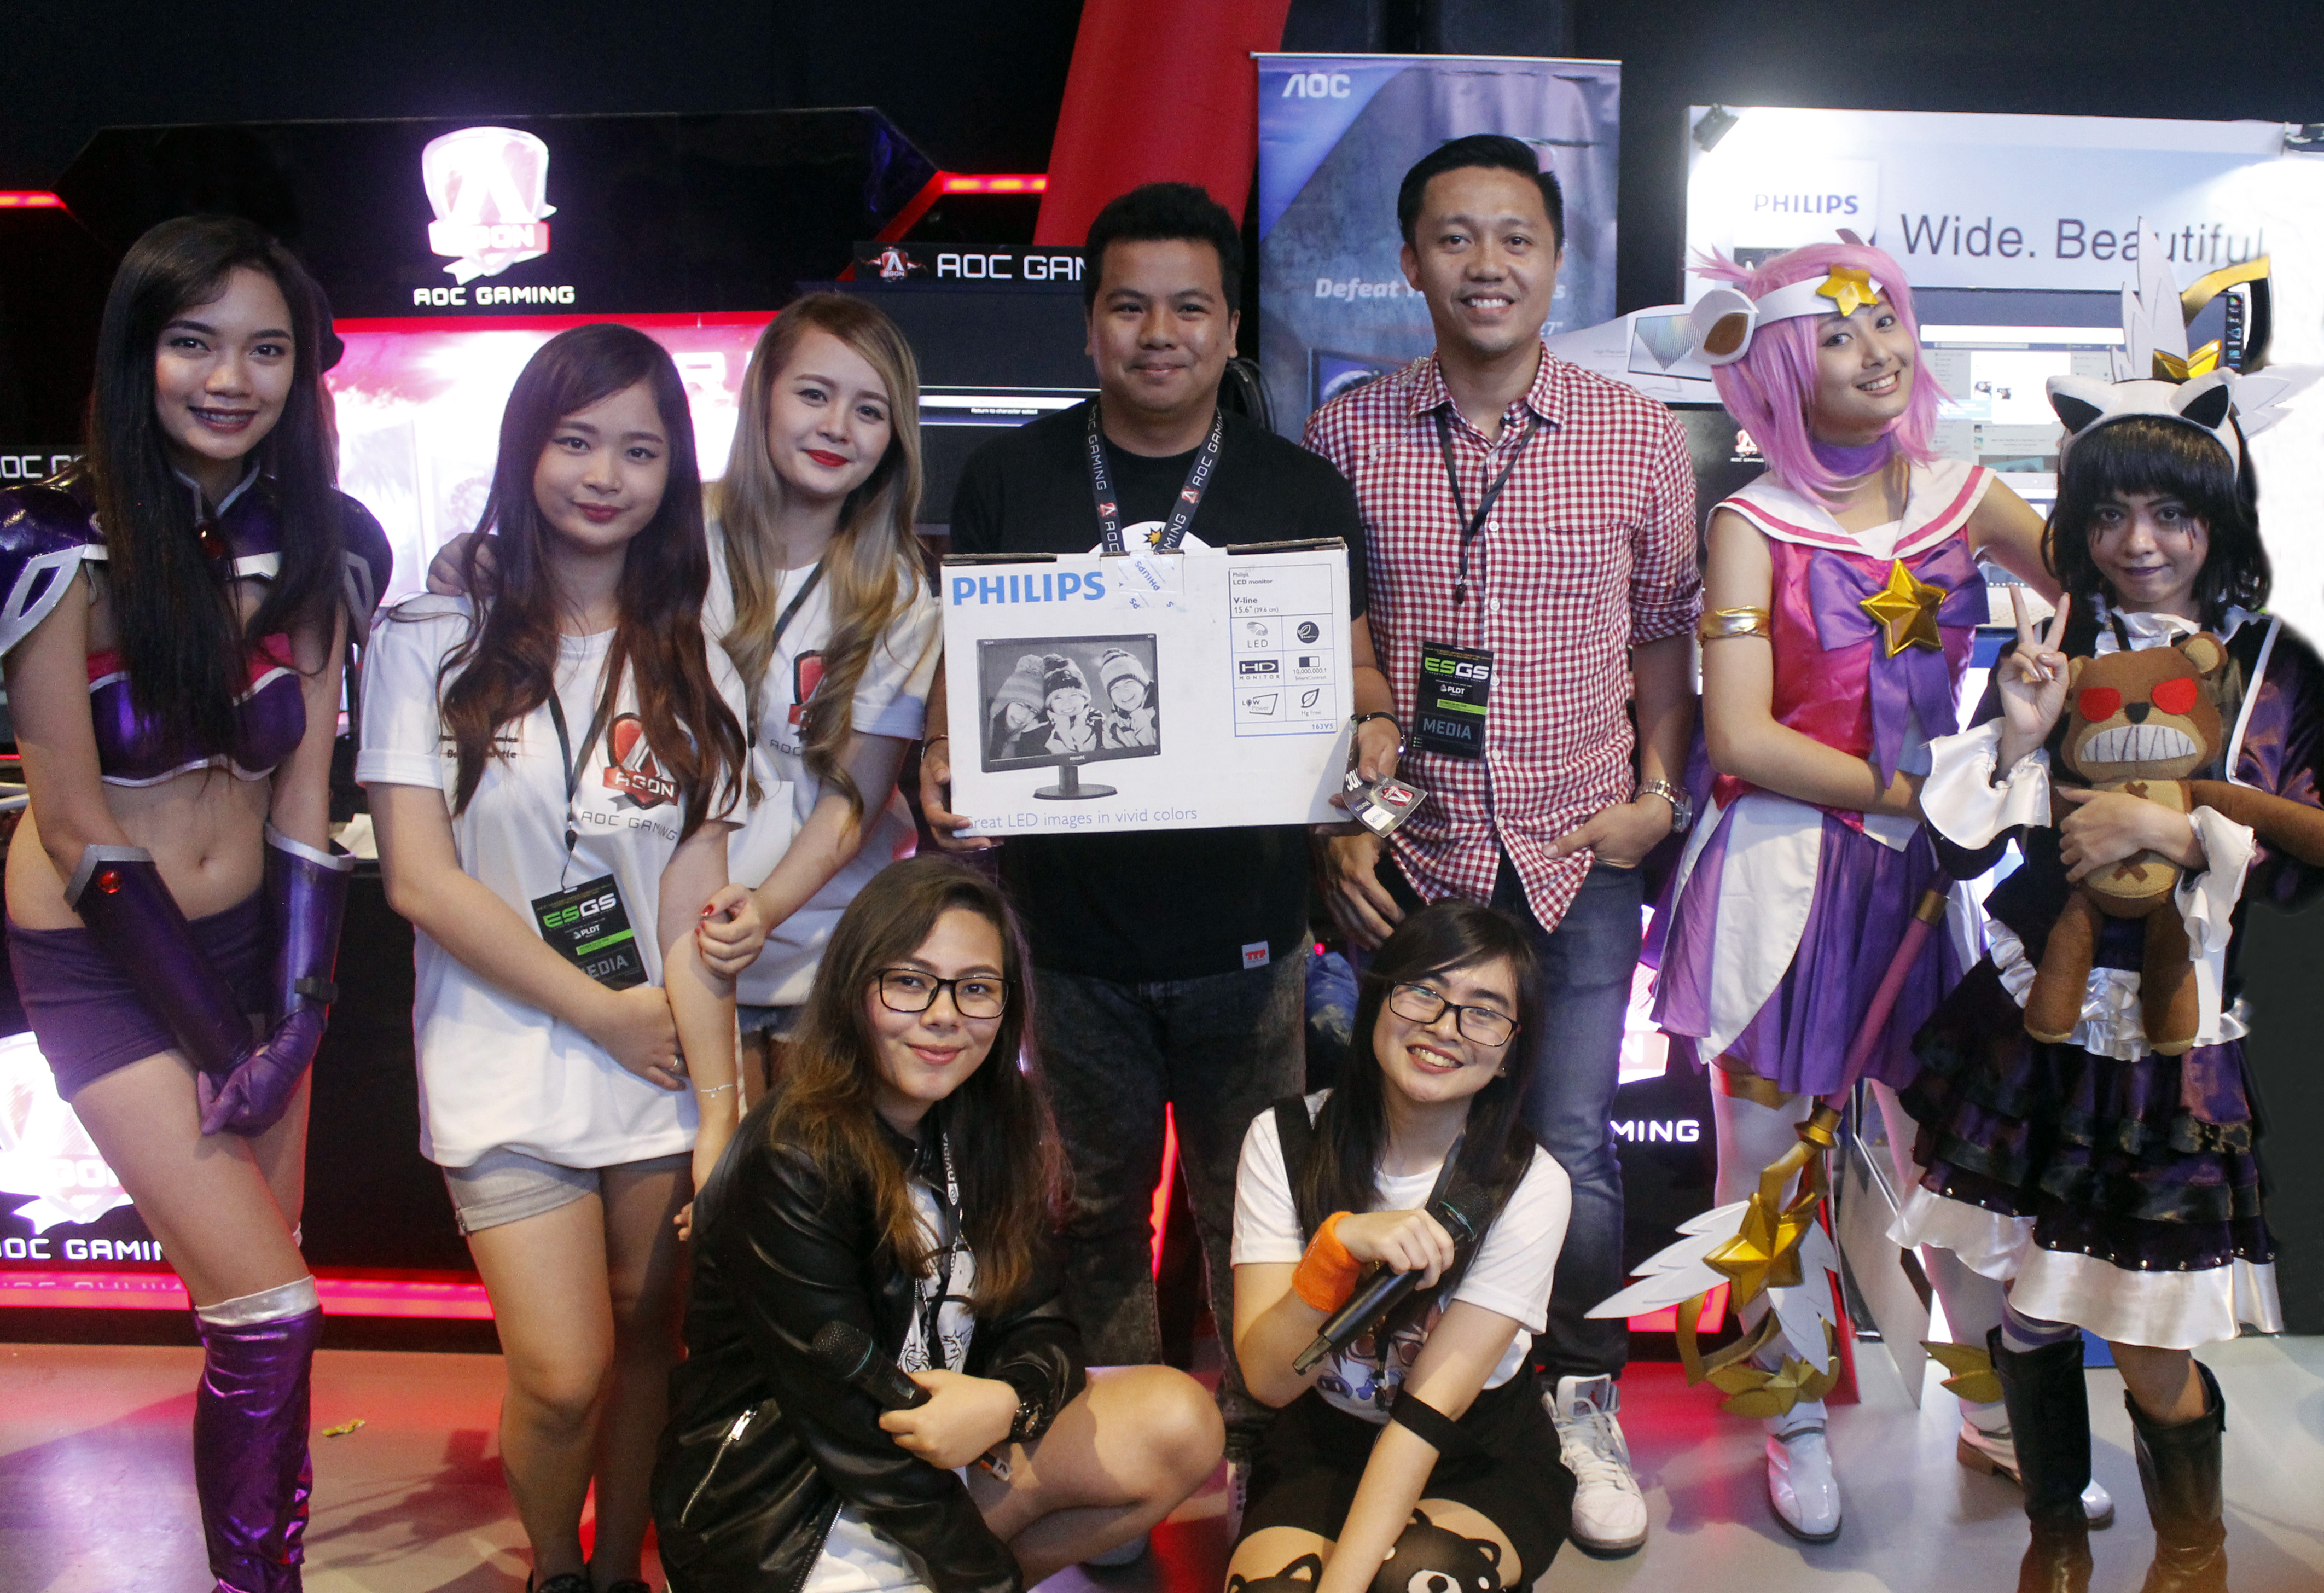 A lucky participant got to bring home his very own Philips Monitor and even got a photo opportunity with the ever charming miss Rikki Quiapon!